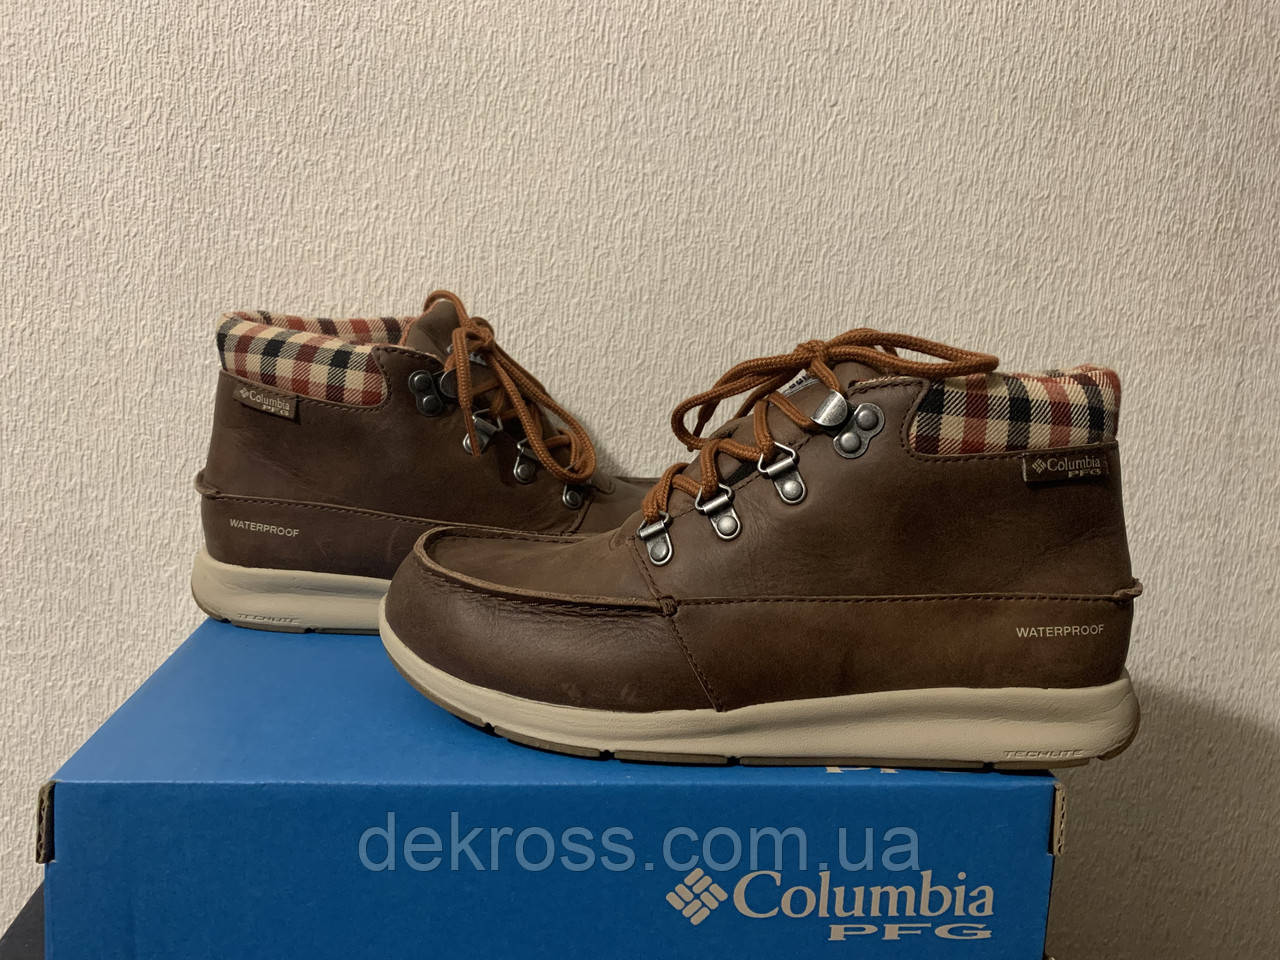 Ботинки Columbia Bahama Boot PFG (40) Оригинал BM5982-256